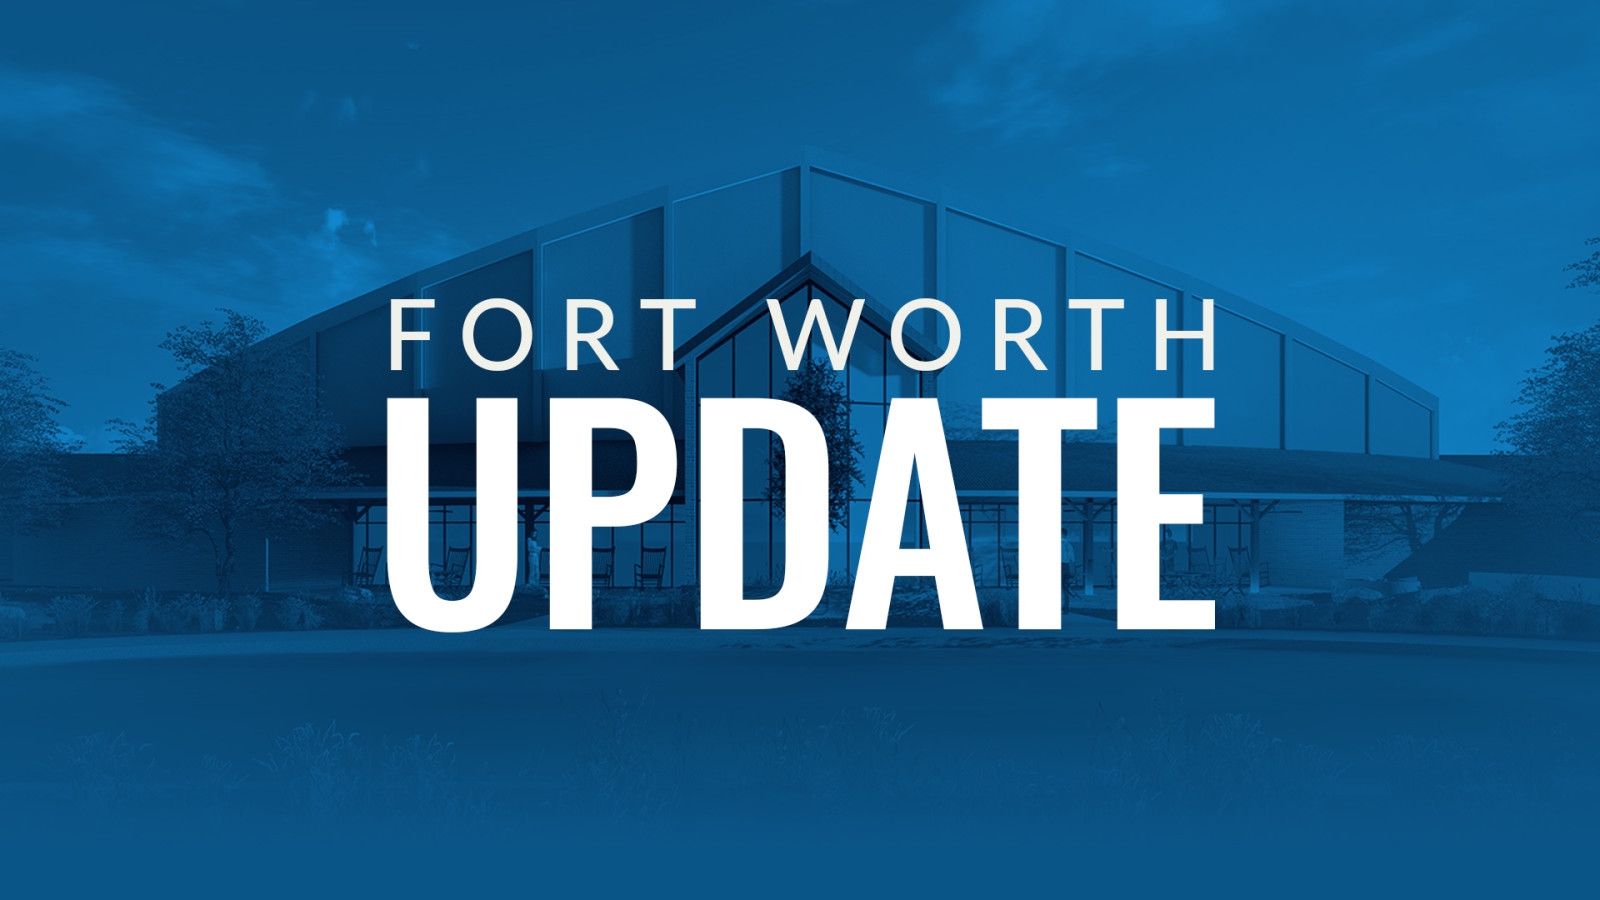 Fort Worth Update Hero Image